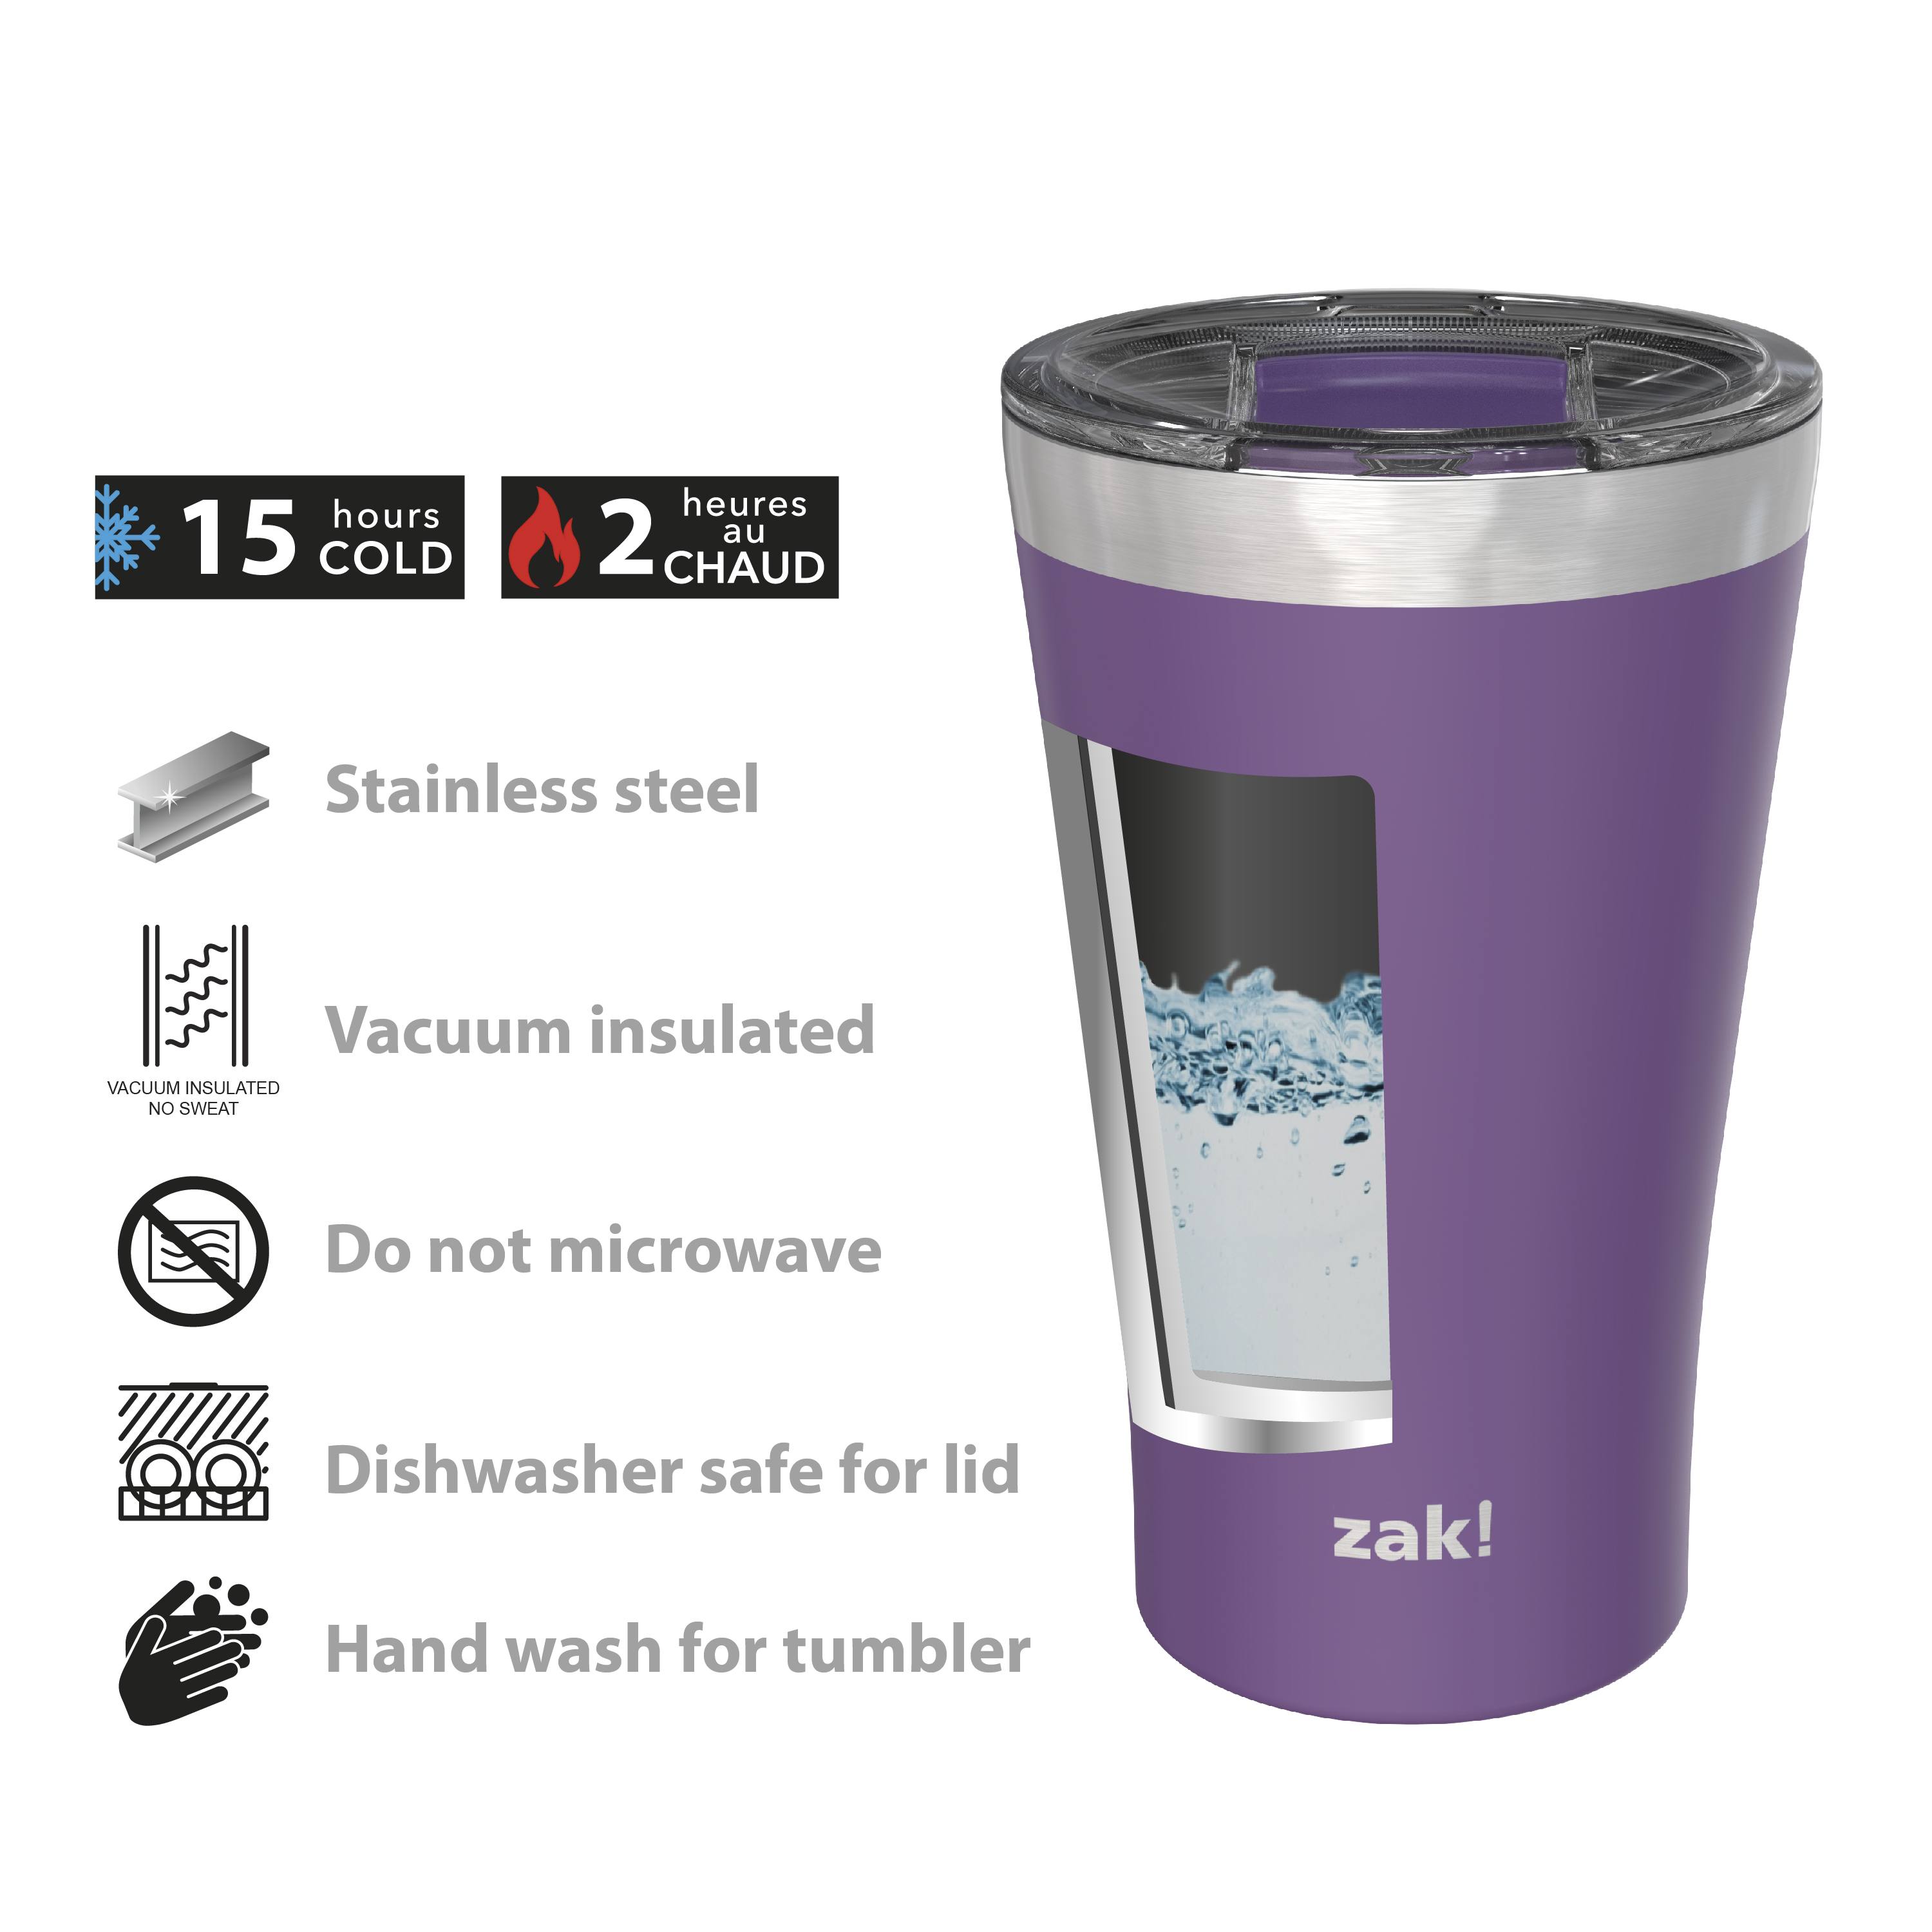 Zak Hydration 20 ounce Reusable Vacuum Insulated Stainless Steel Tumbler with Straw, Viola slideshow image 5